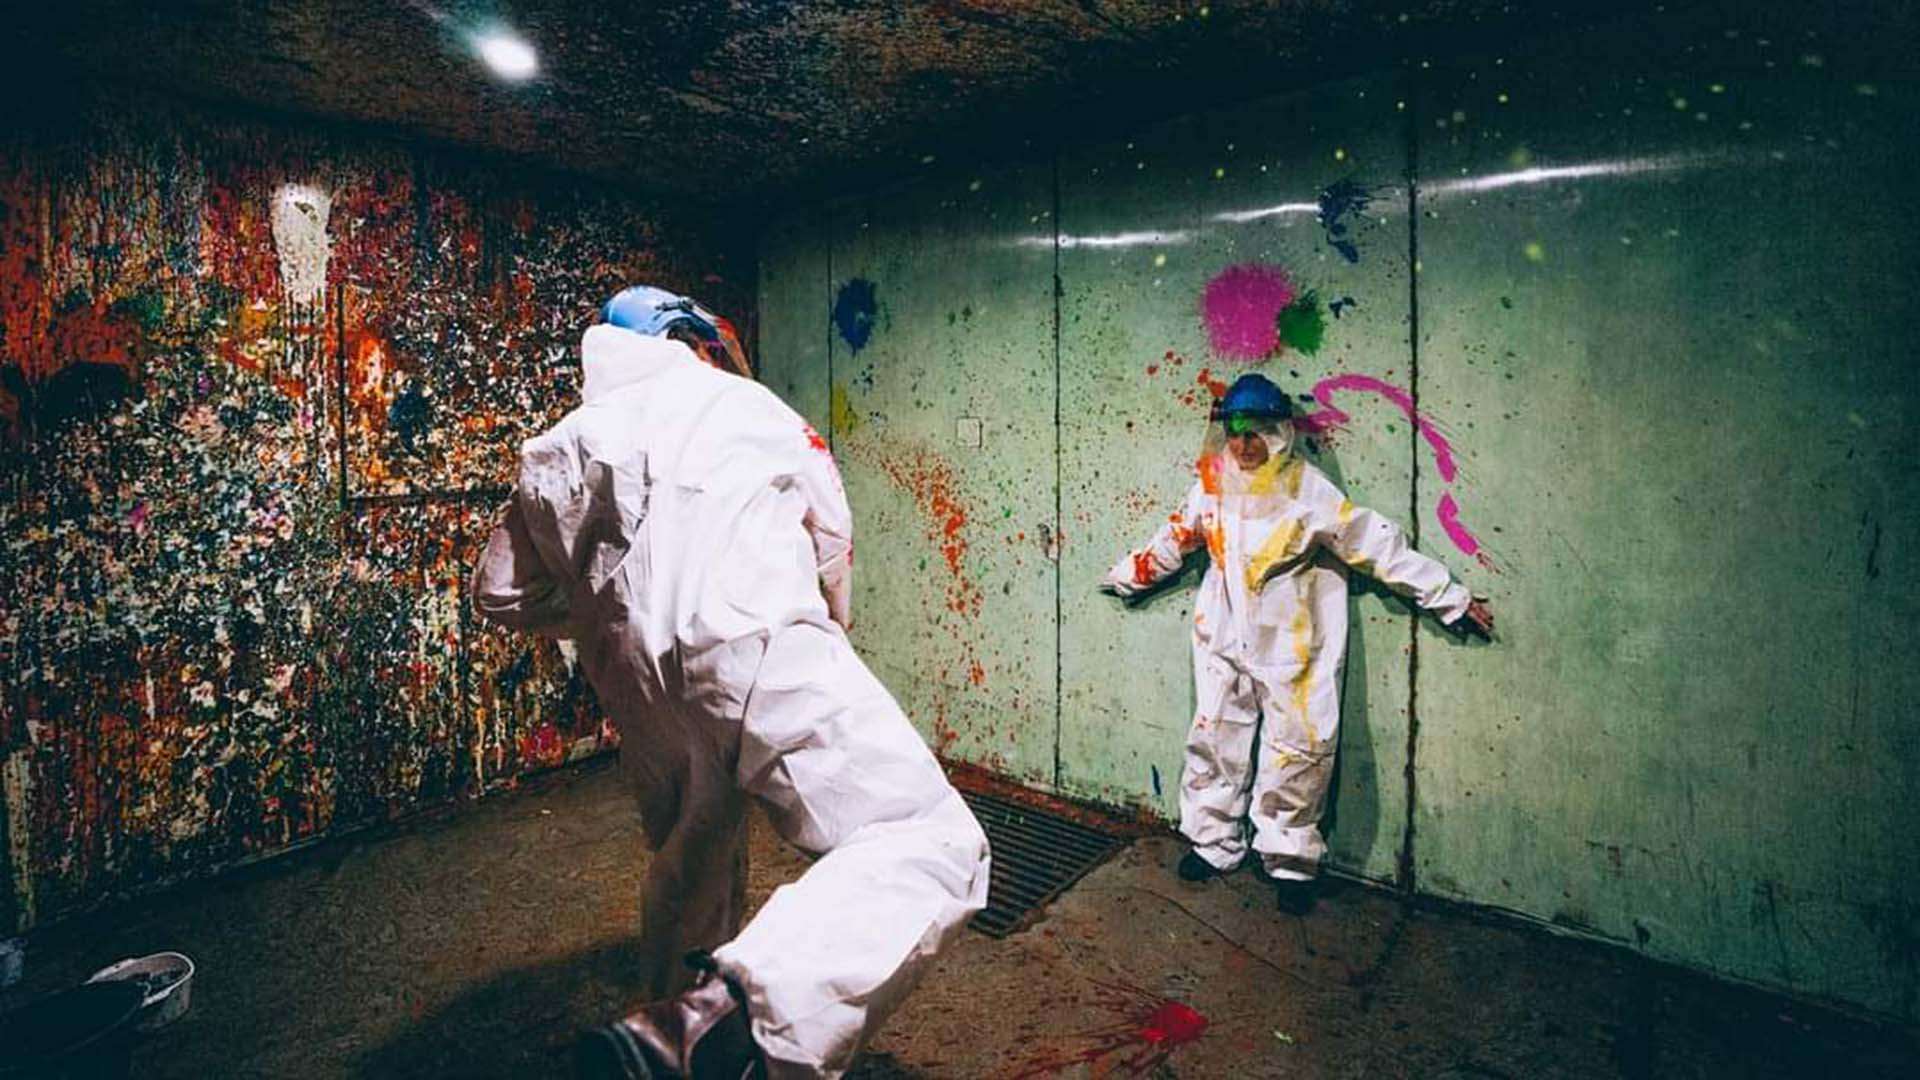 Smash Splash Is Sydney's New Warehouse Where You Can Hurl Paint at Walls